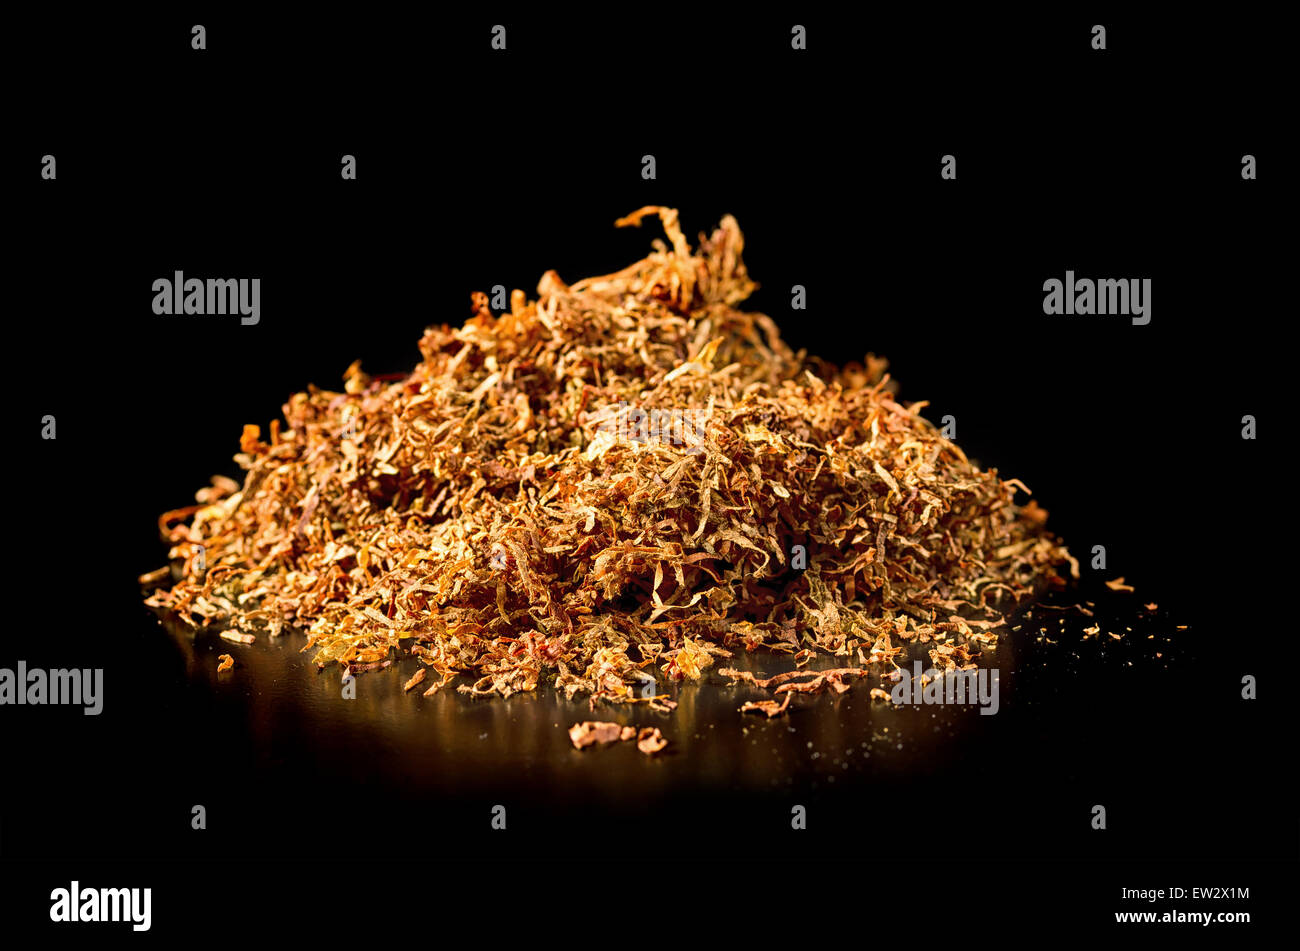 Pile of tobacco on a black background. - Stock Image